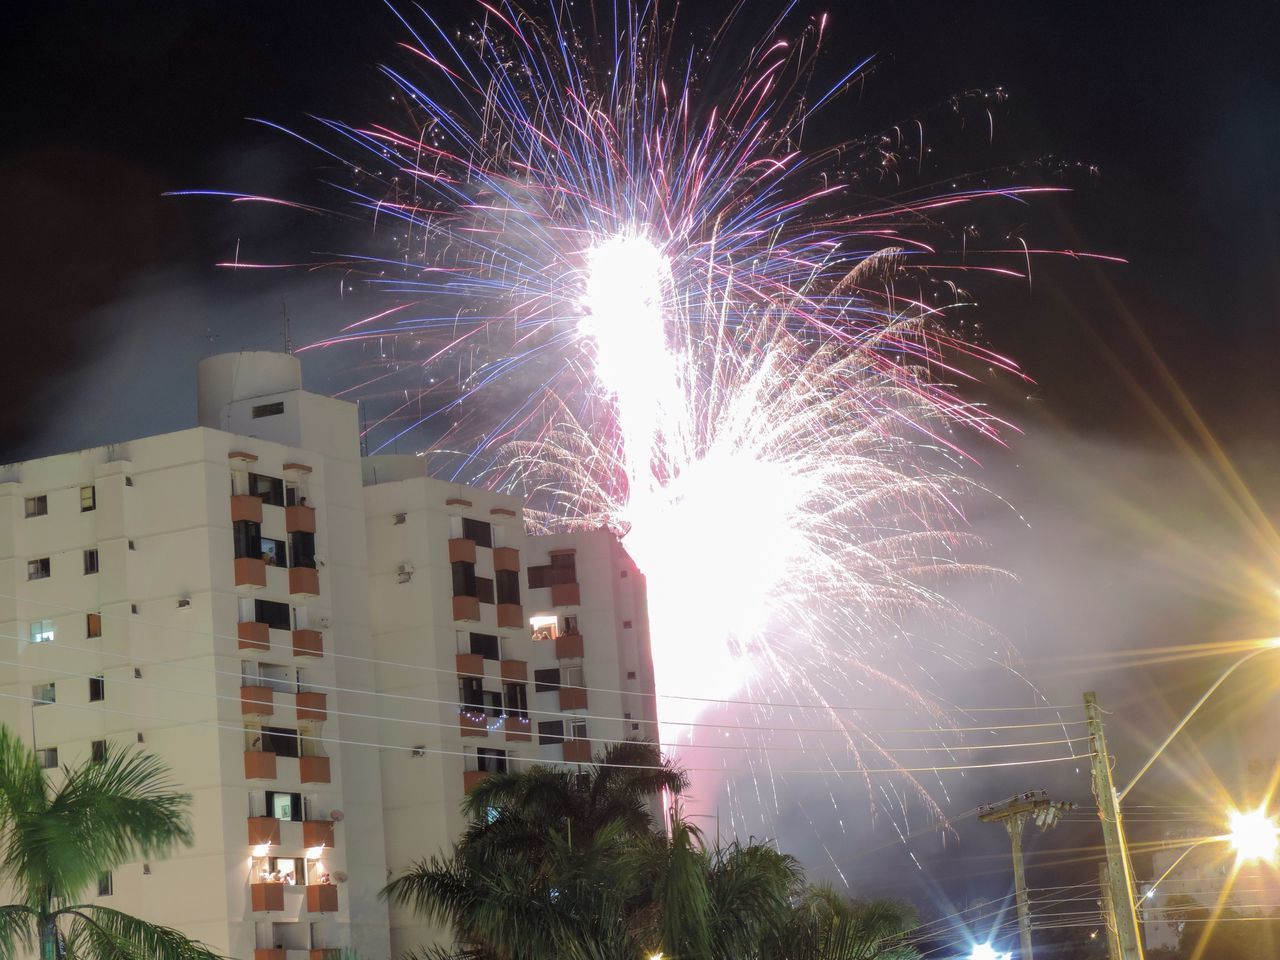 night, celebration, illuminated, firework display, firework - man made object, long exposure, glowing, architecture, building exterior, low angle view, exploding, built structure, event, no people, arts culture and entertainment, outdoors, firework, motion, sky, city, multi colored, tree